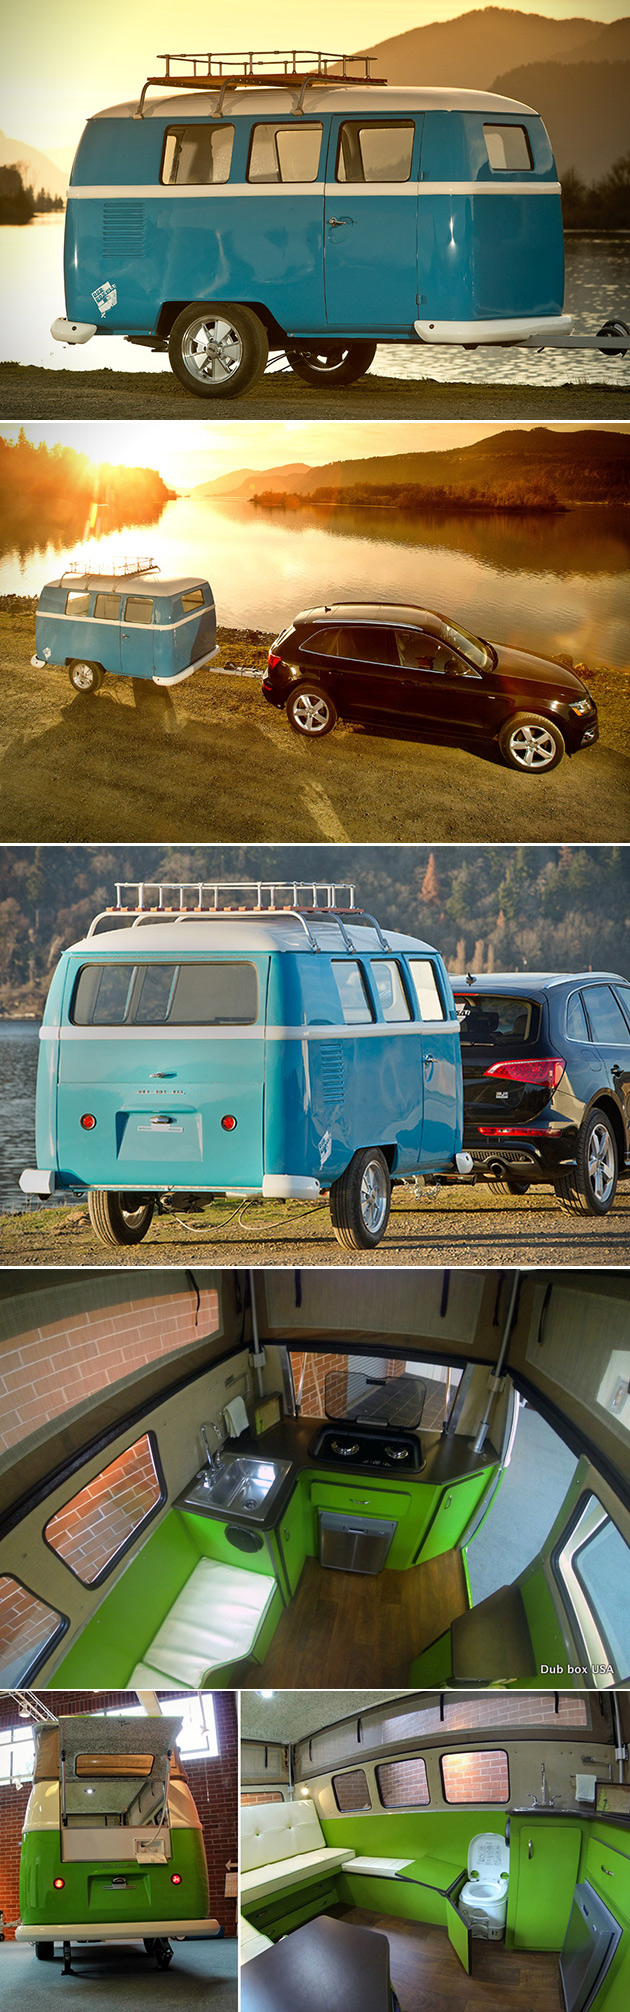 Dub Box VW Camper